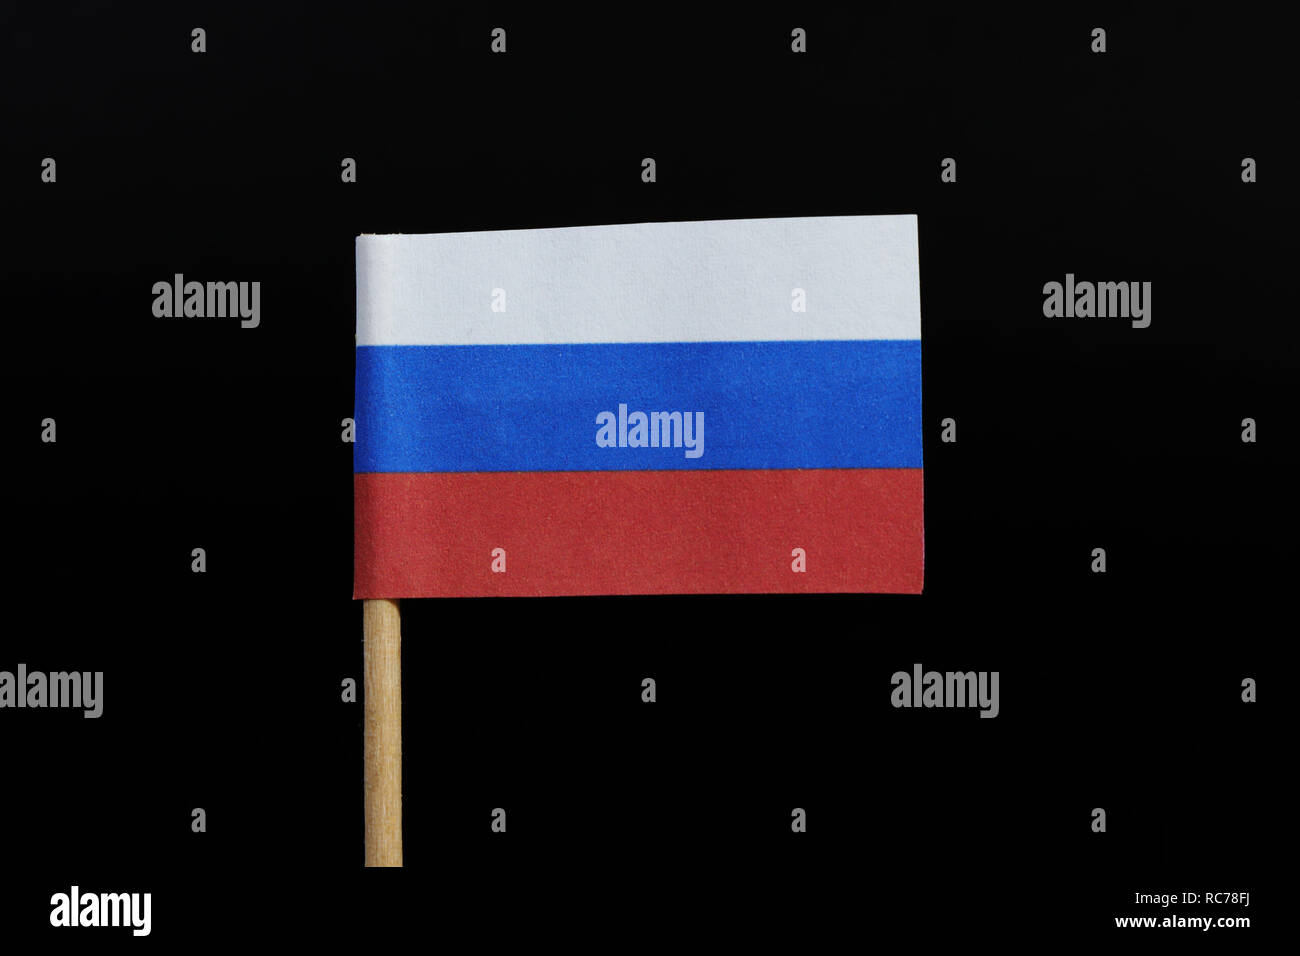 A original and national flag of Russia  on toothpick on black background. A horizontal tricolour of white, dark blue and red. - Stock Image